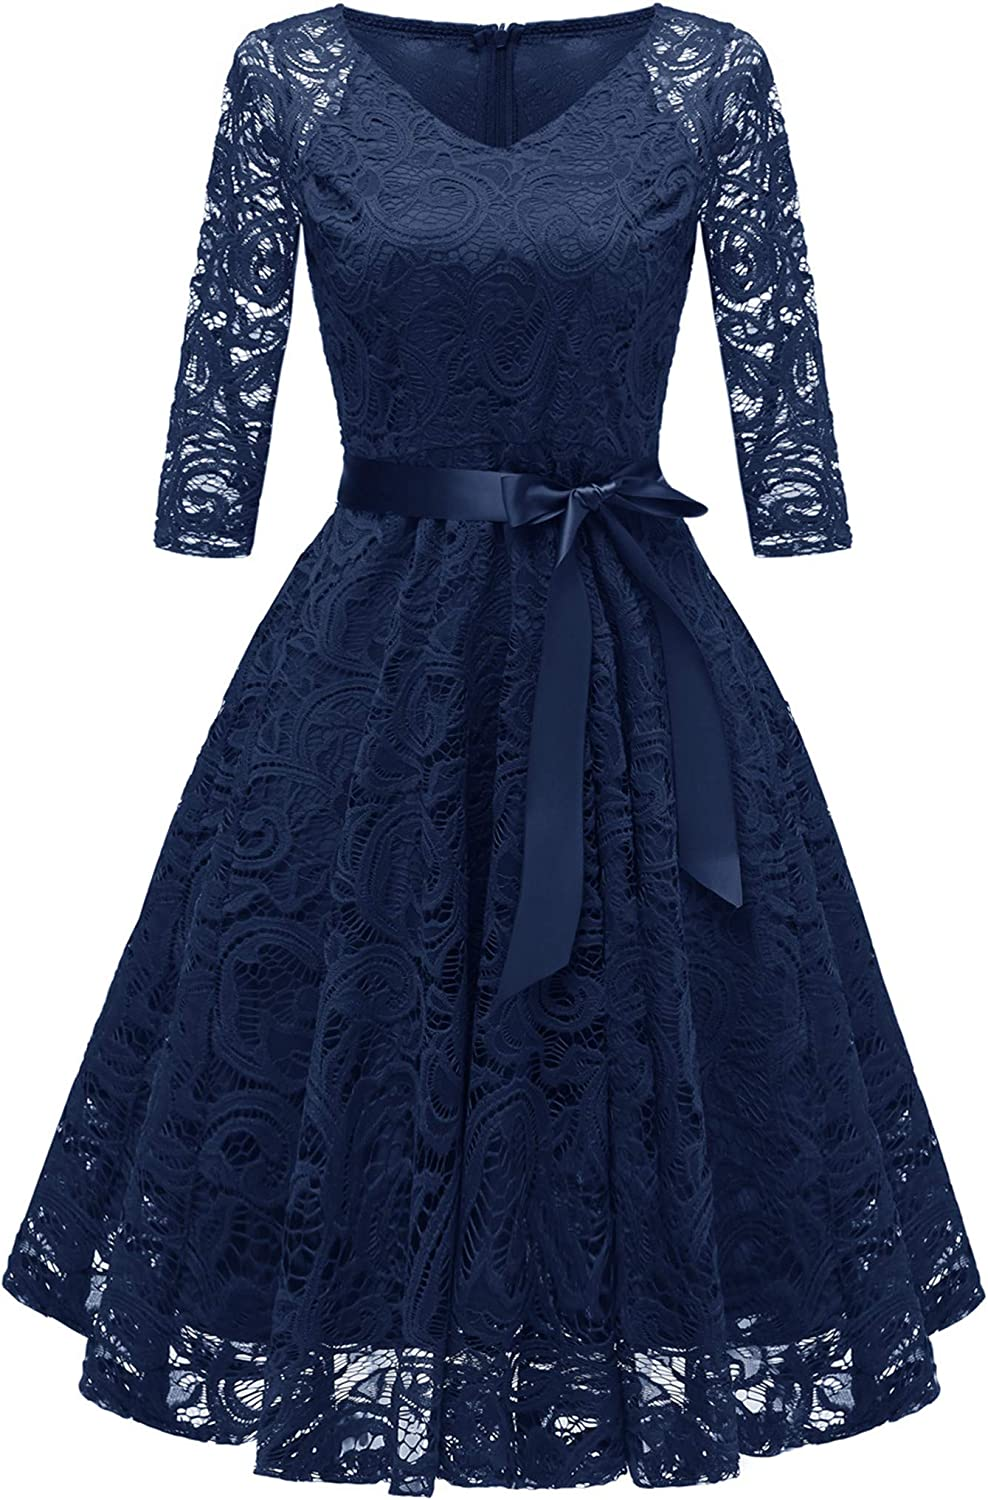 Andongnywell Women's Full Floral Lace Swing Dress A-line Formal Hollow Dress V Neck Bridesmaid Party Midi Dress